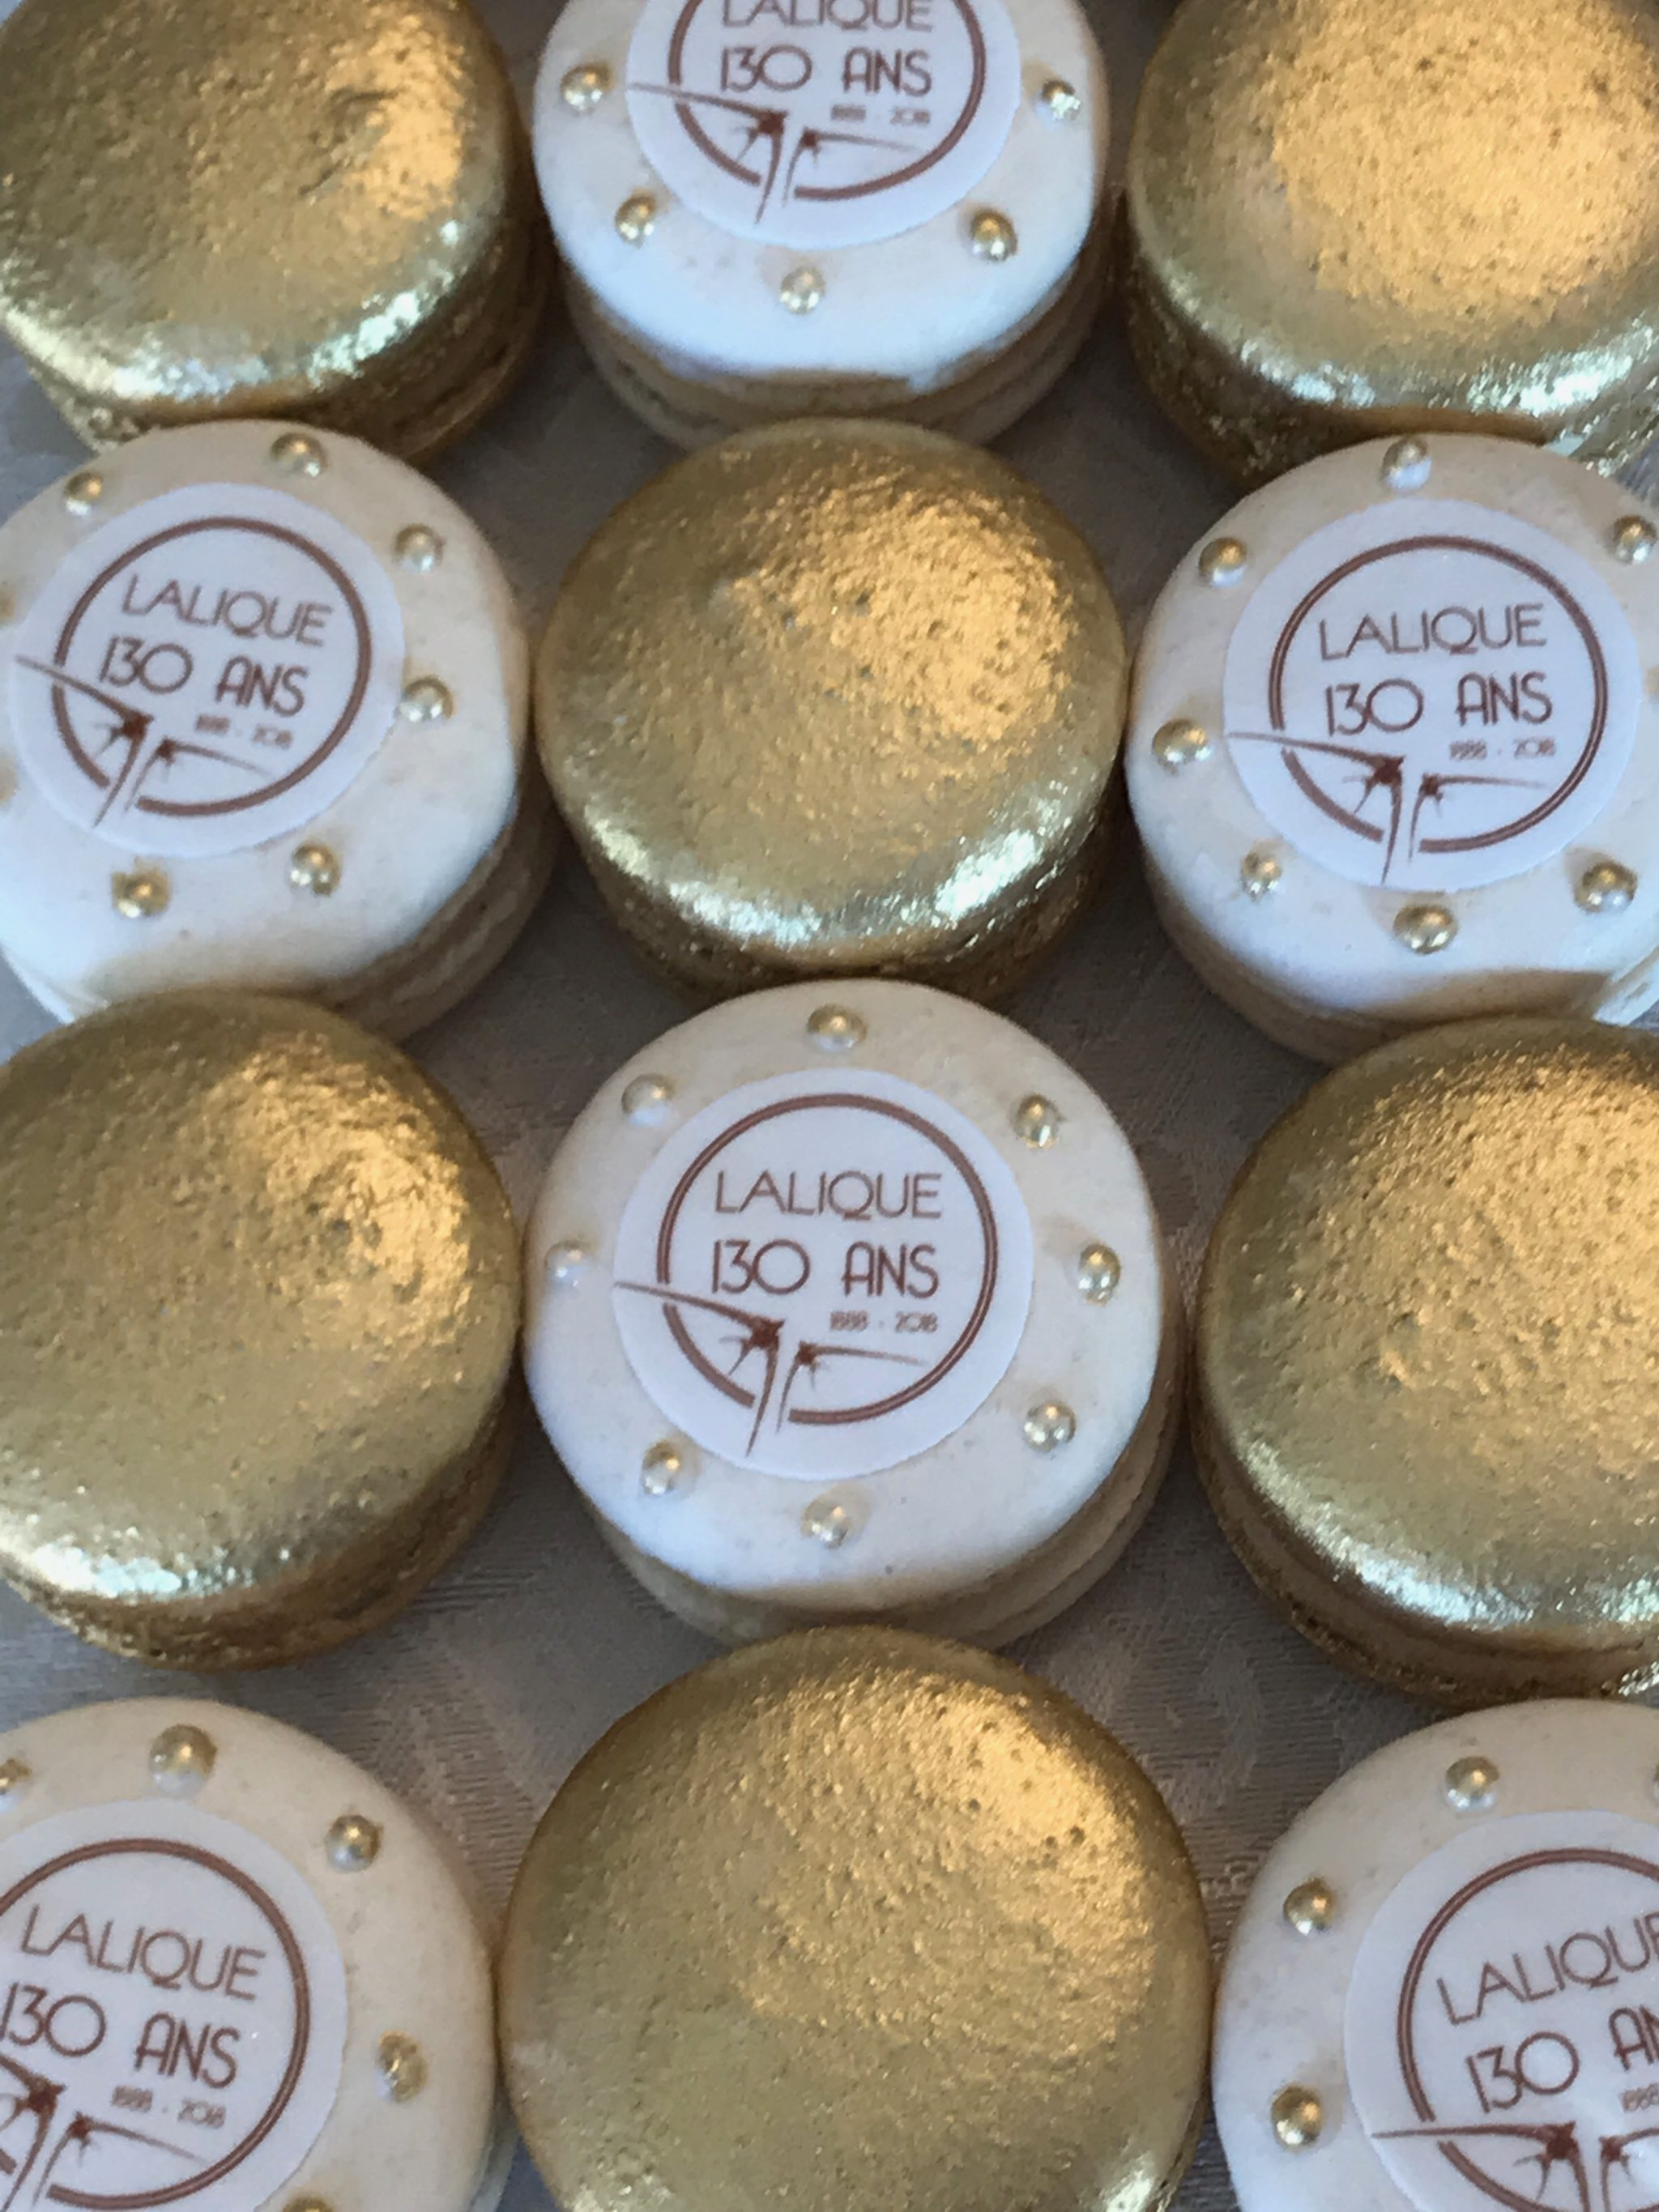 Corporate Branded Macarons